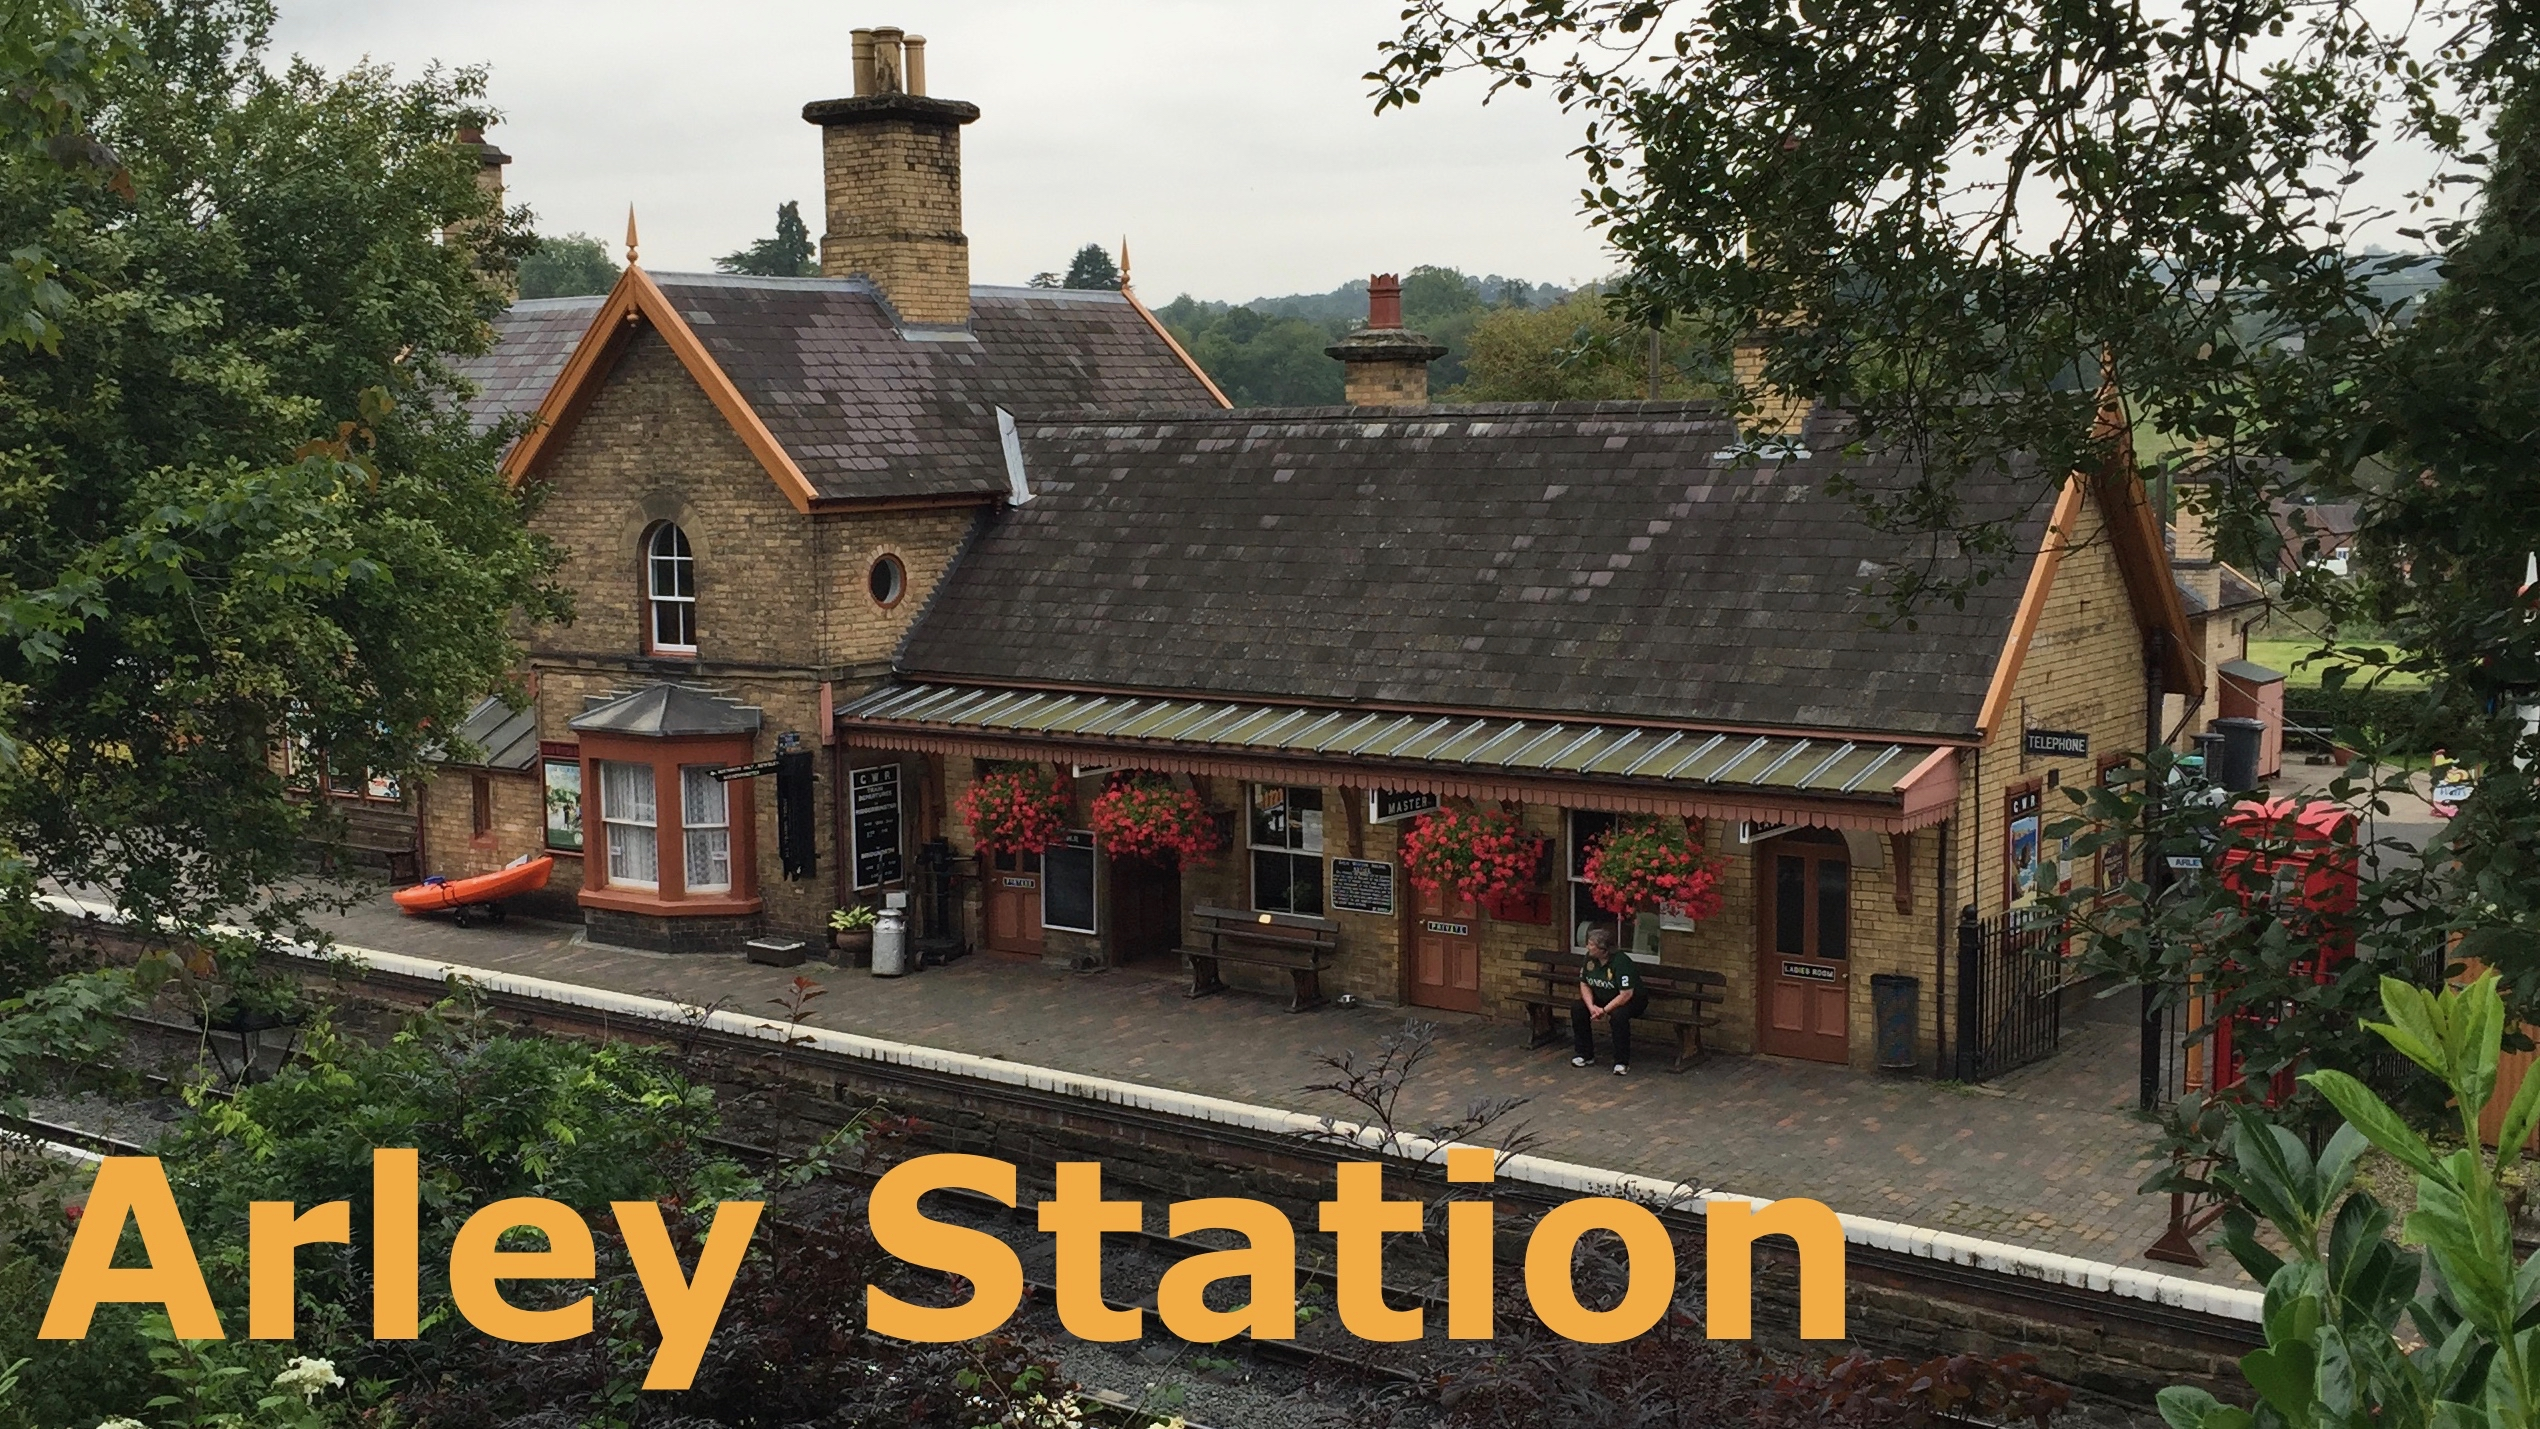 A  classic brick built railway station with high pitched roof and many colourful hanging baskets in a wooded area